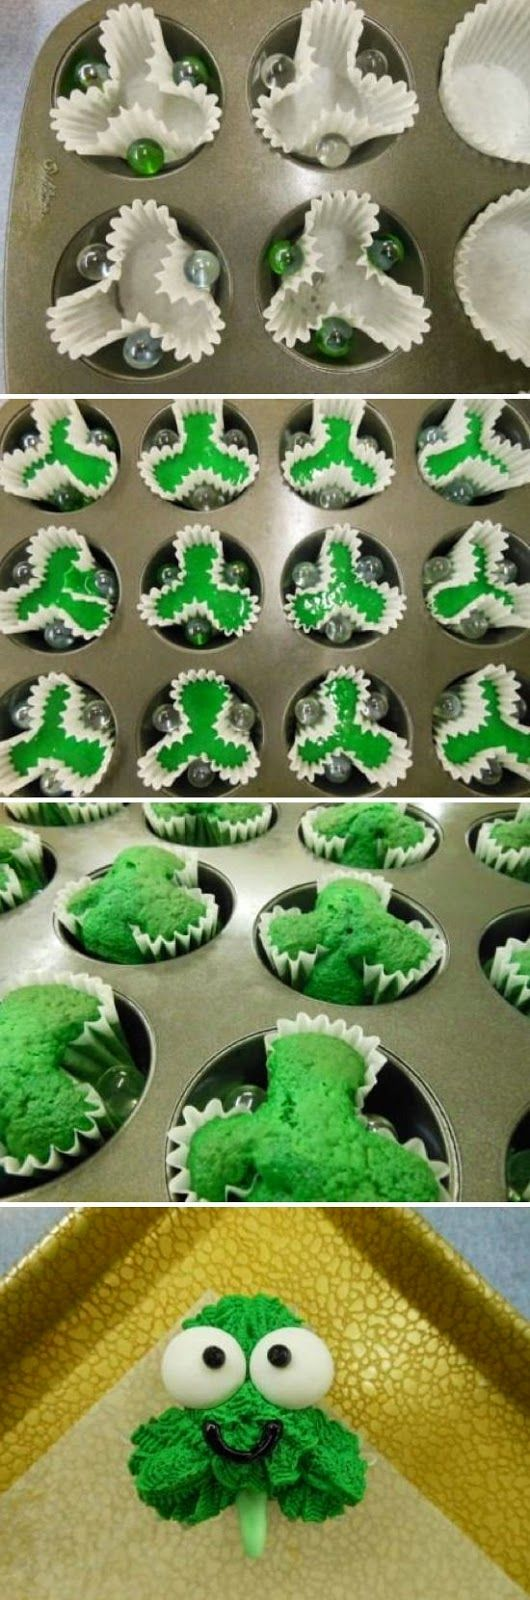 Shamrock Cupcakes #cupcakes #cupcakeideas #cupcakerecipes #food #yummy #sweet #delicious #cupcake